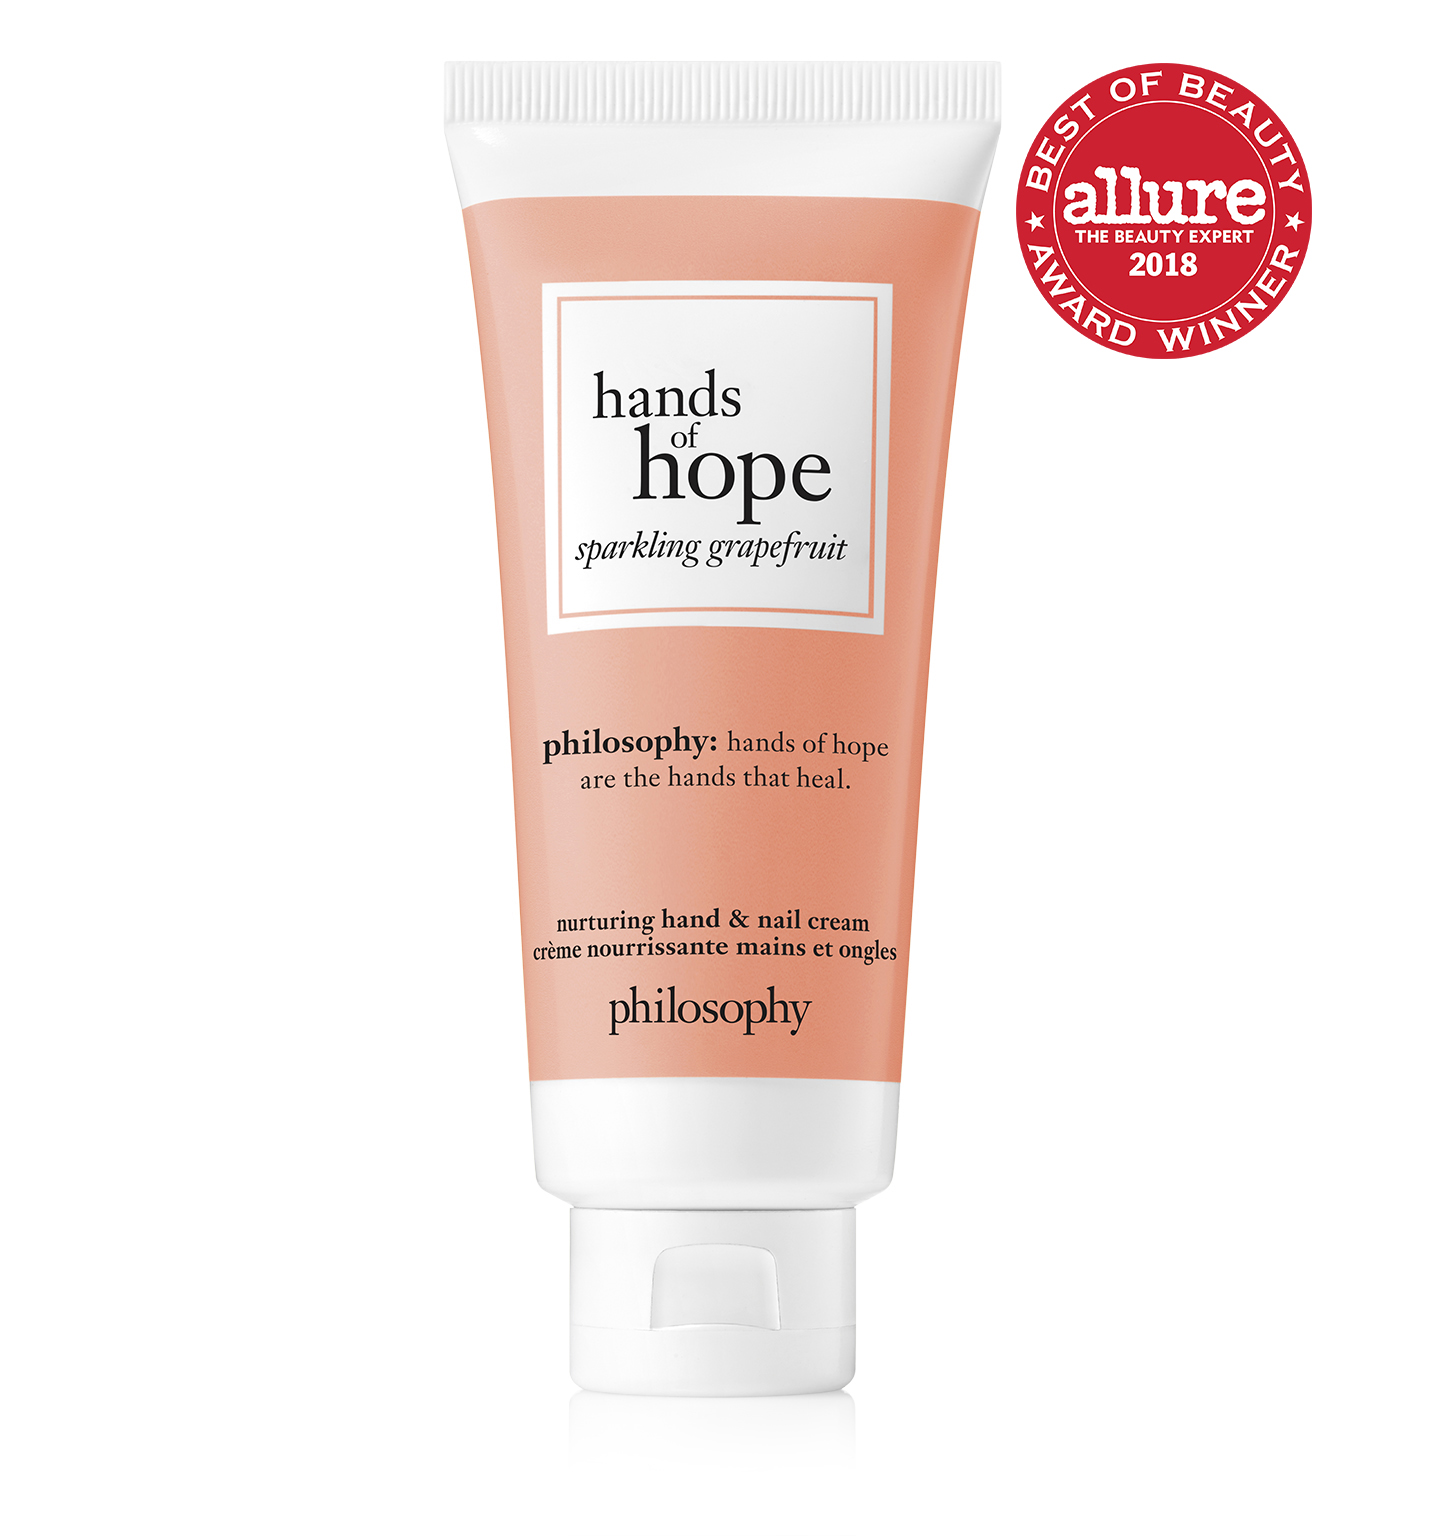 philosophy, sparkling grapefruit hand cream